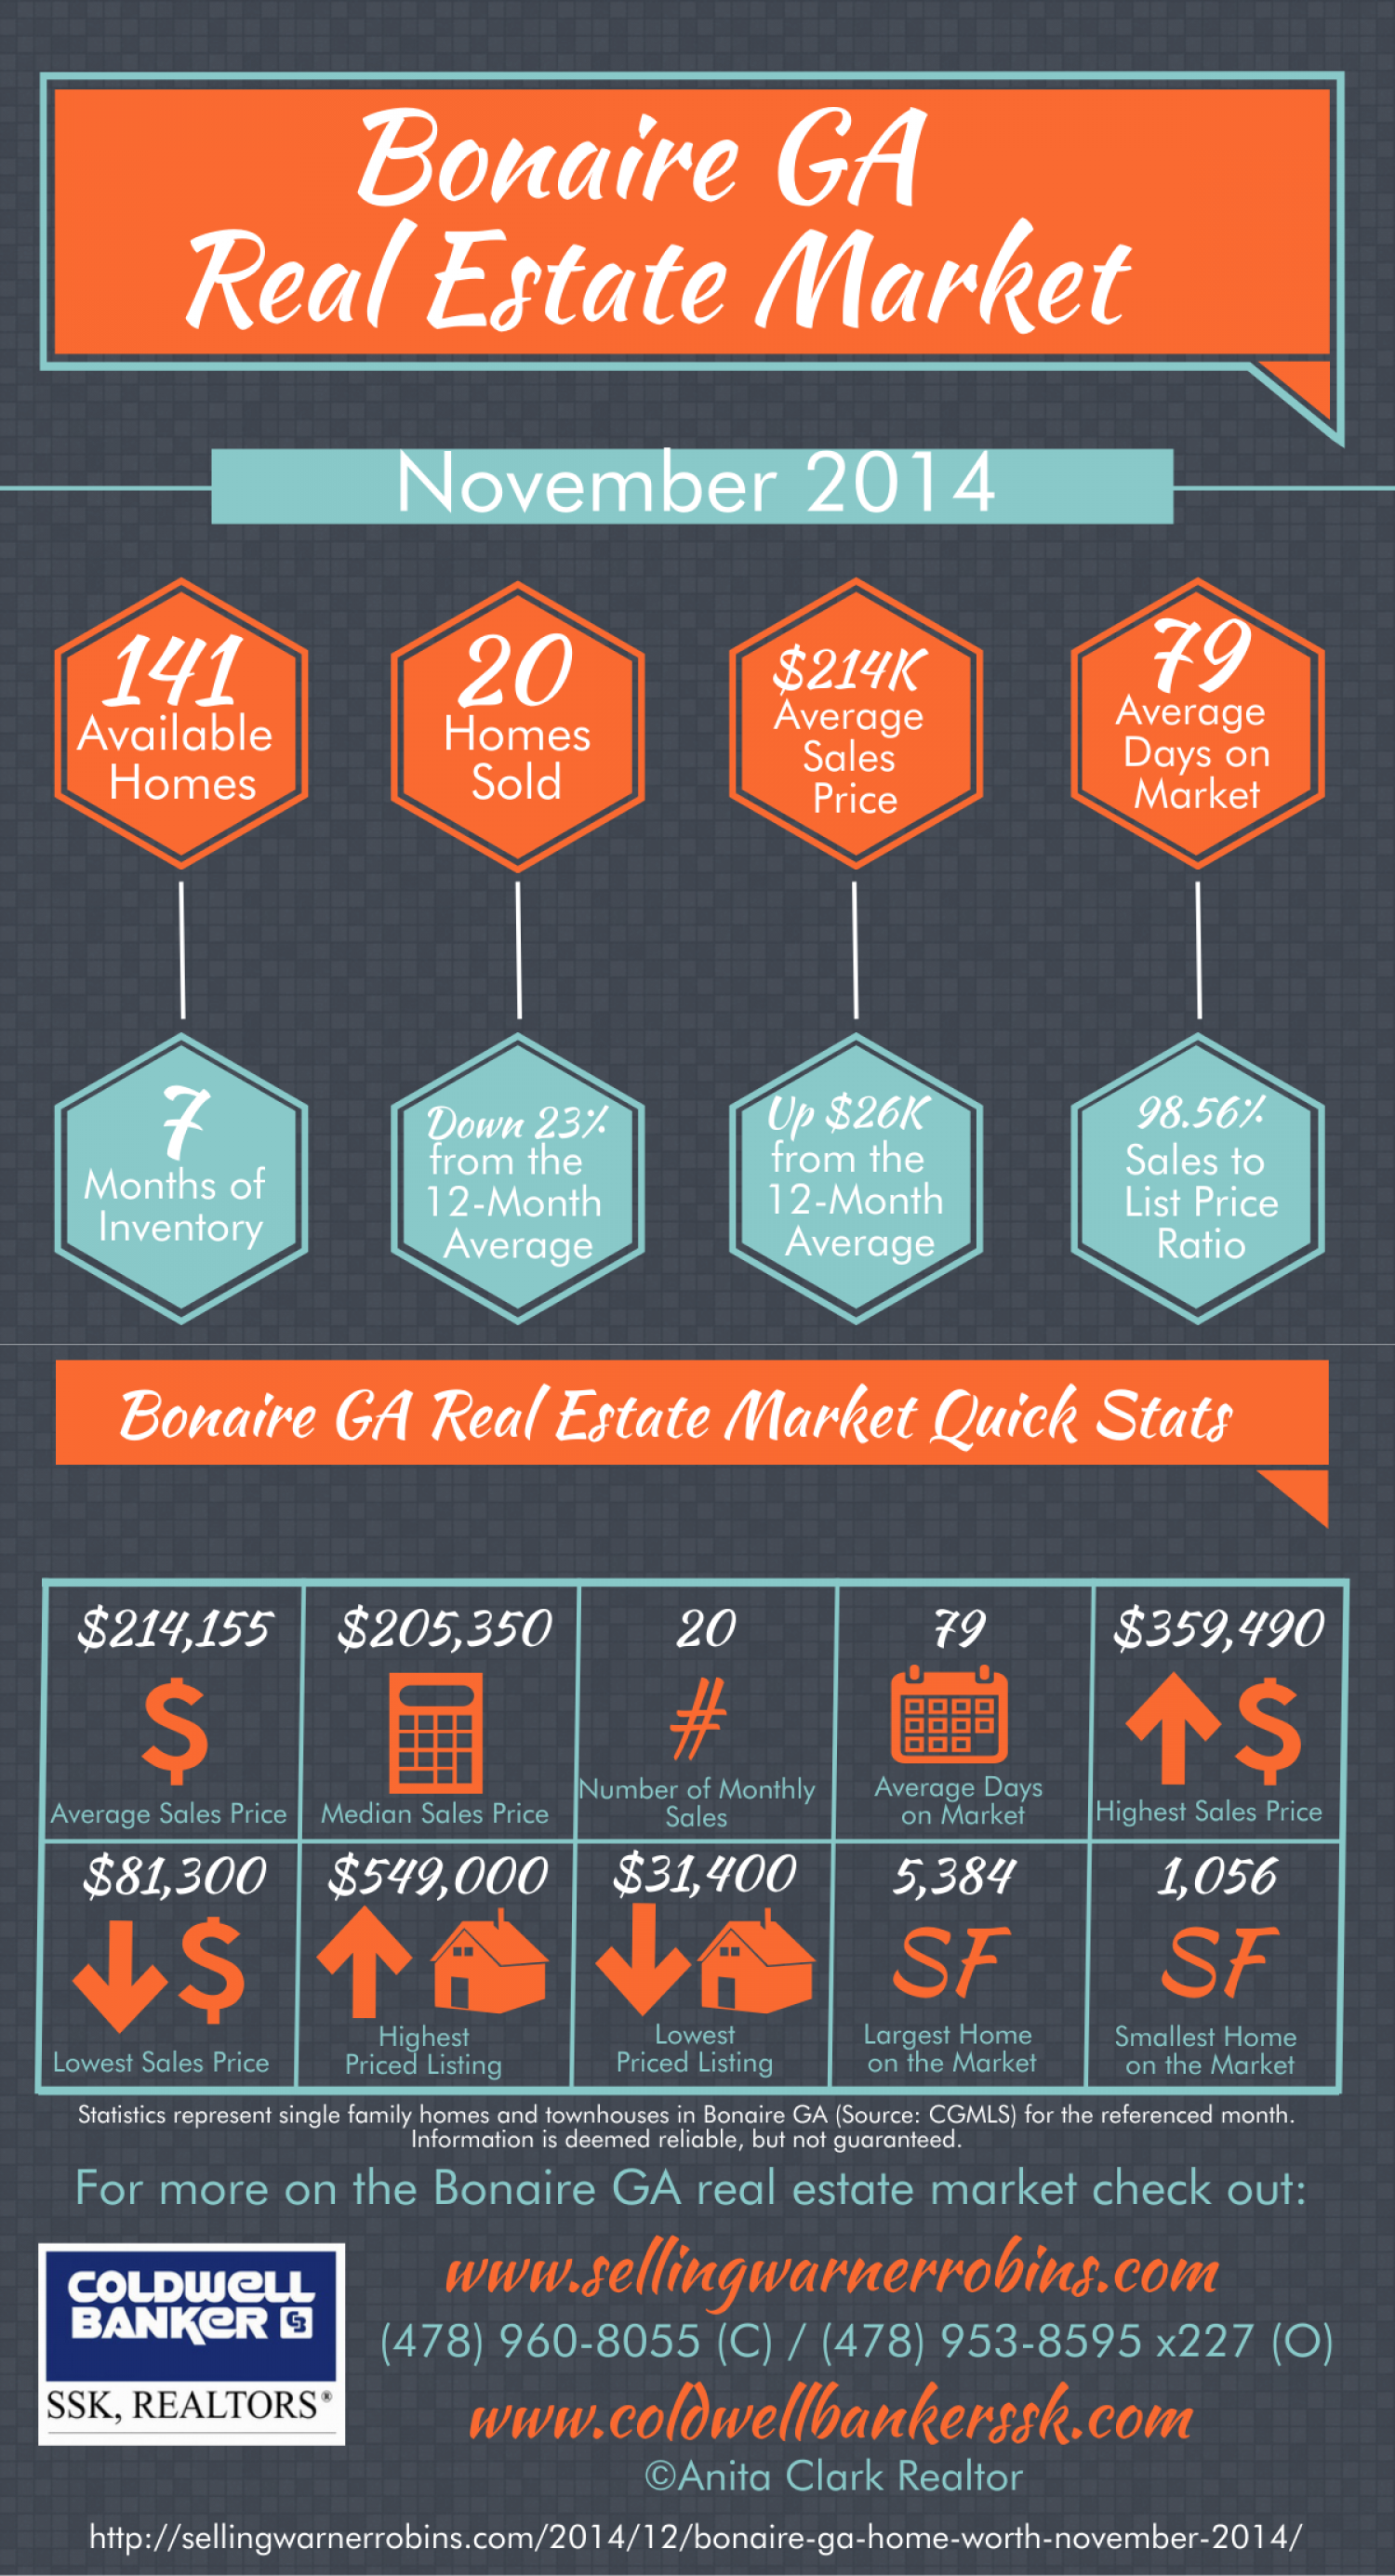 Bonaire GA Real Estate Market in November 2014 Infographic